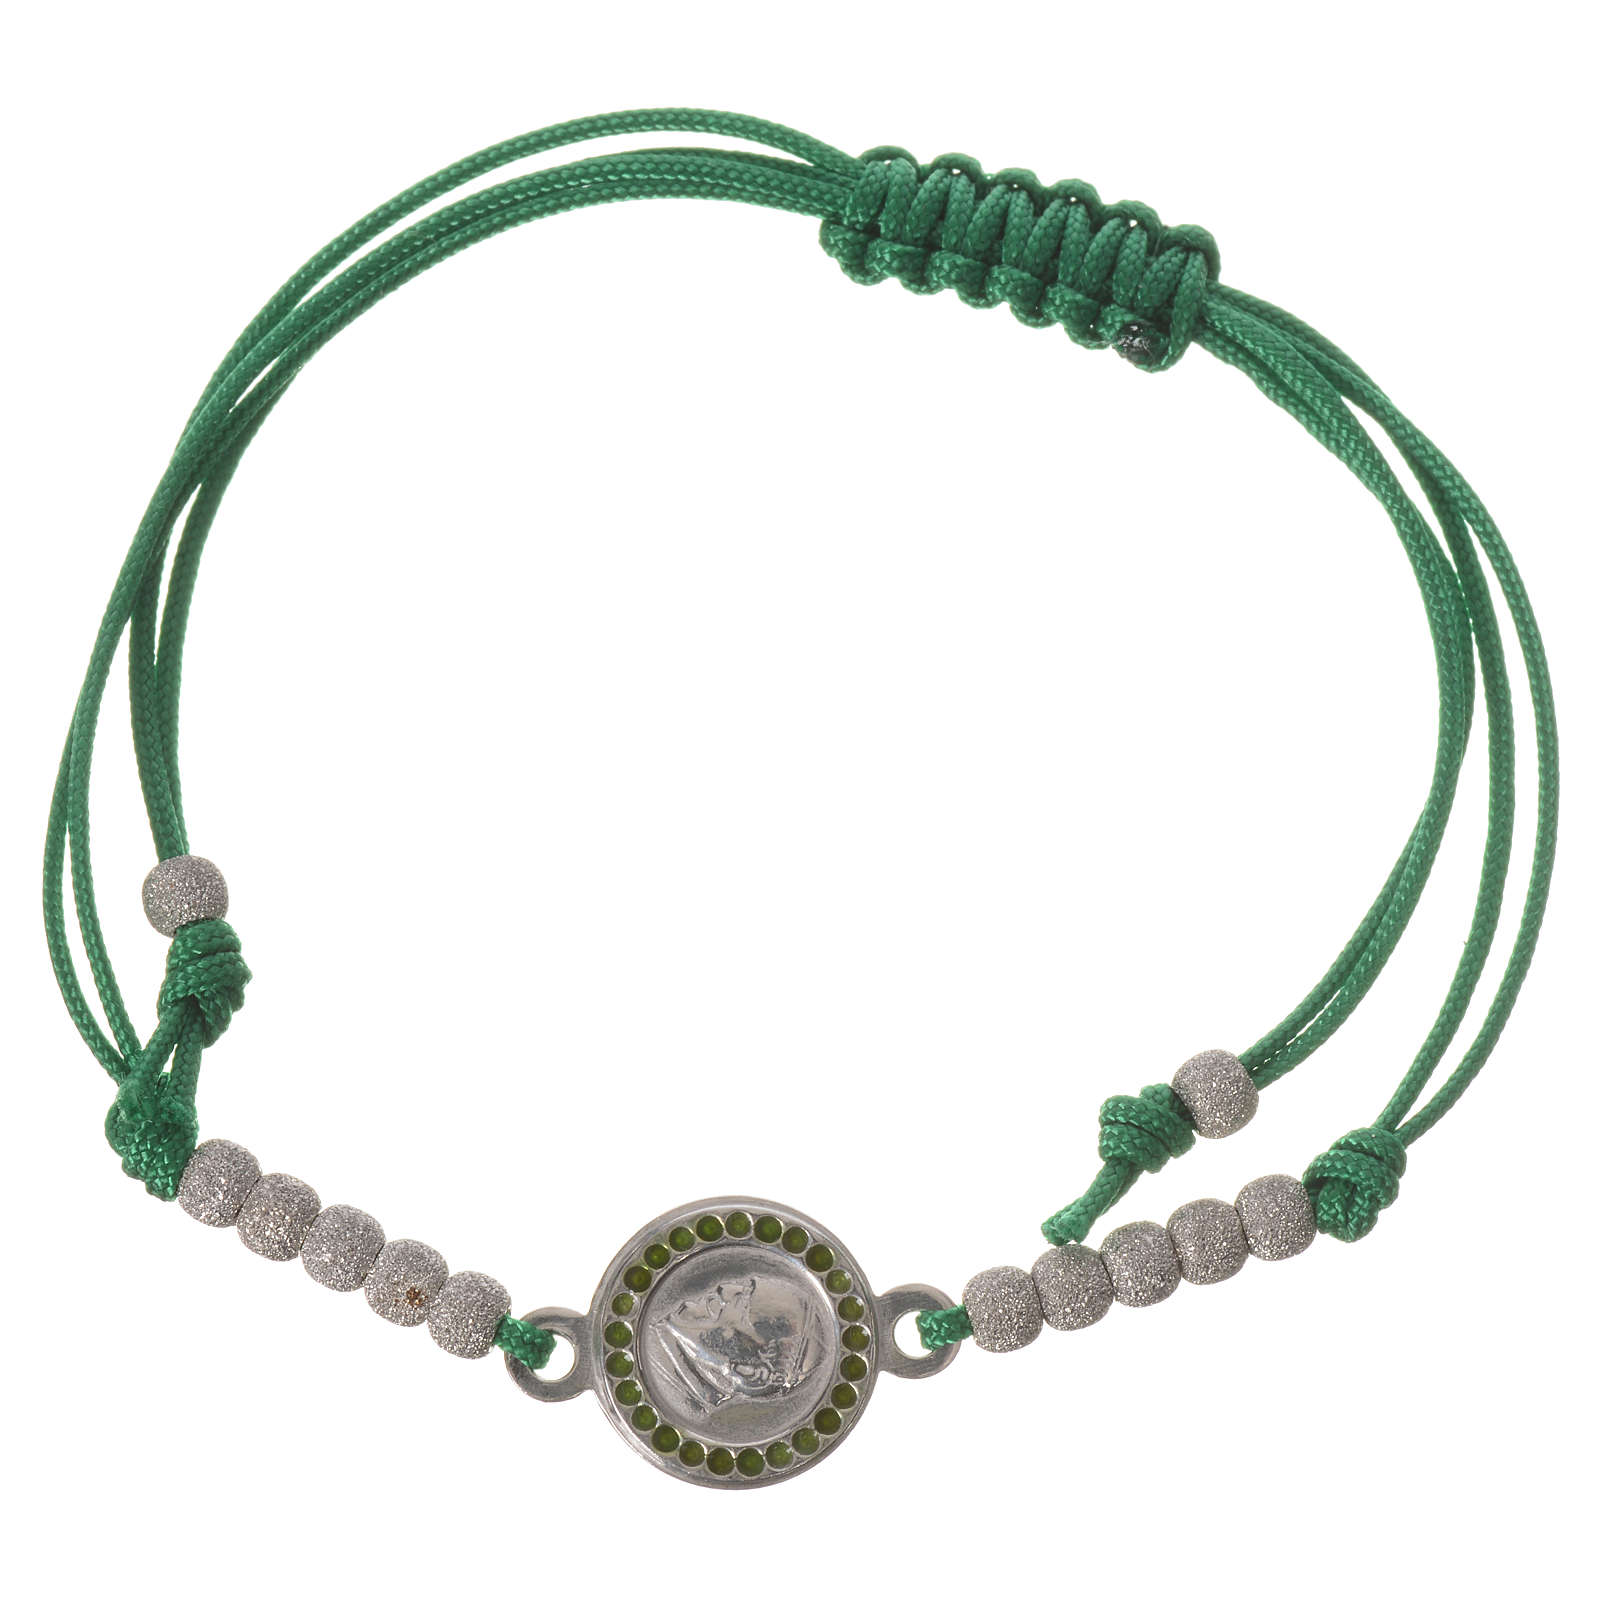 Bracelet with green cord and Pope Francis medal in 800 silver 4